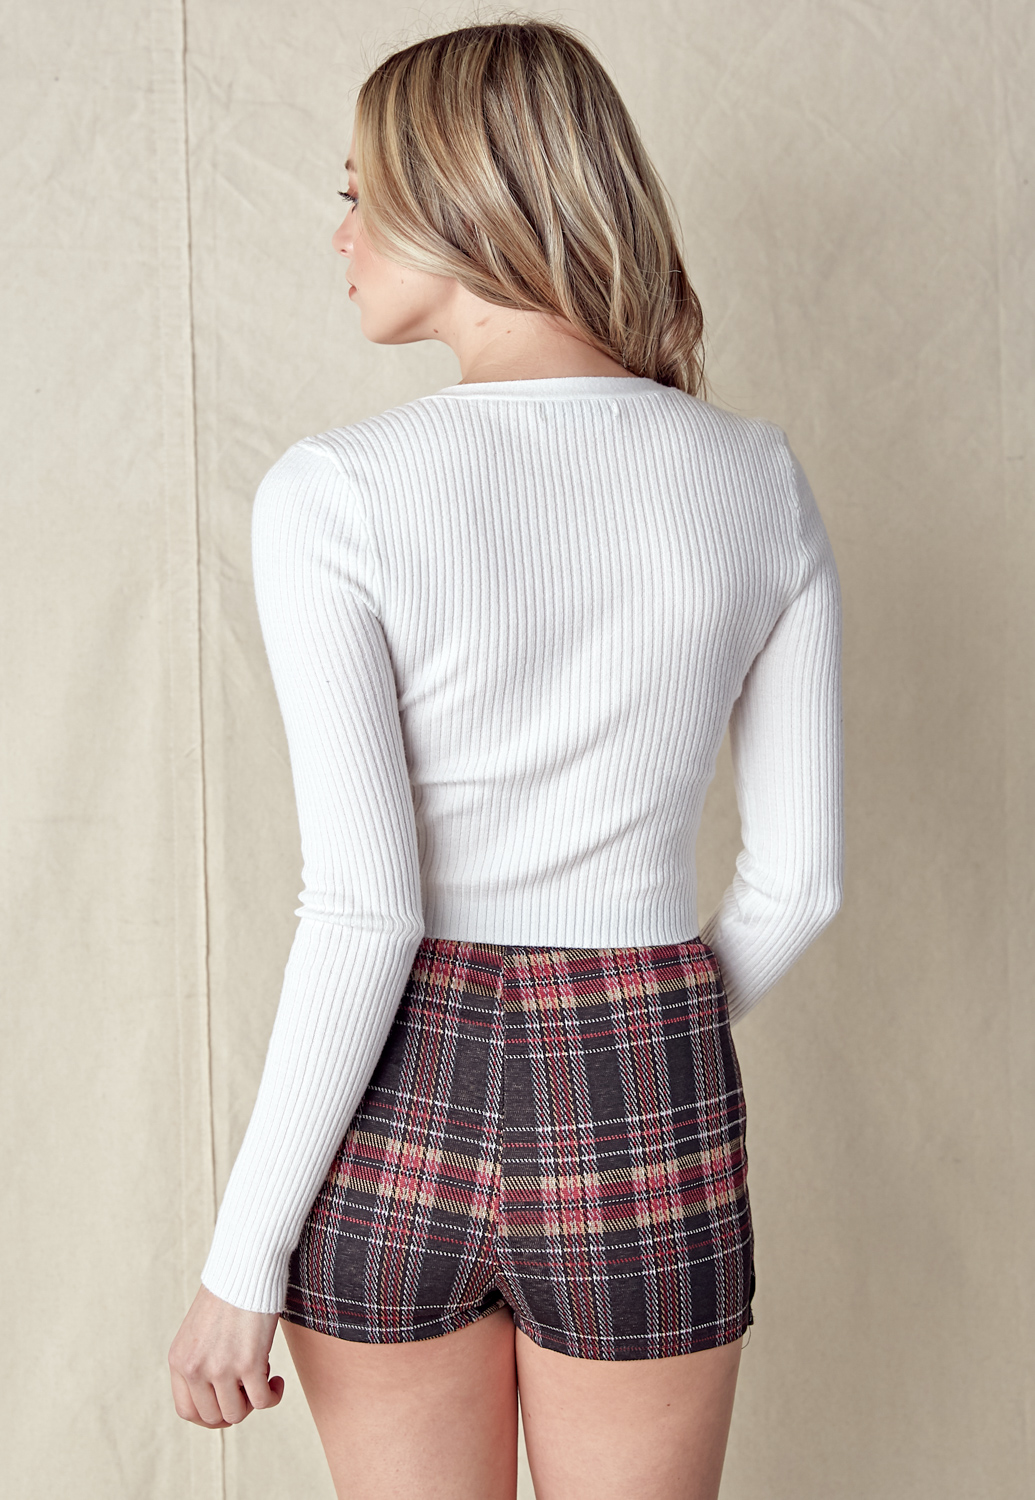 Plaid Skirt Pants